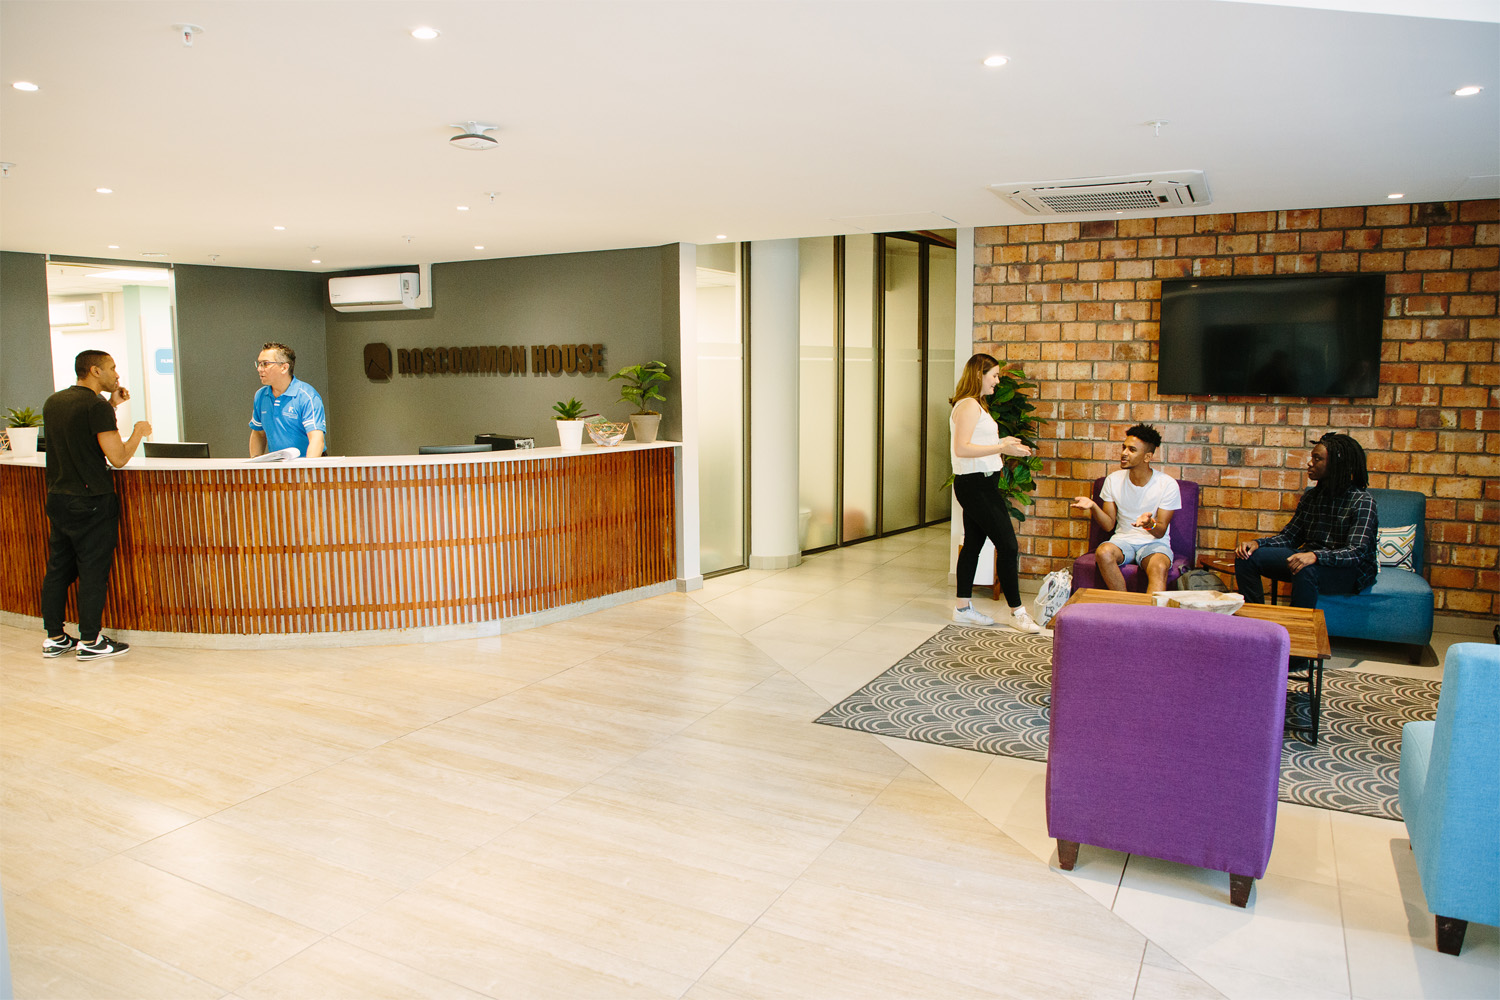 Roscommon_House_Reception_Area